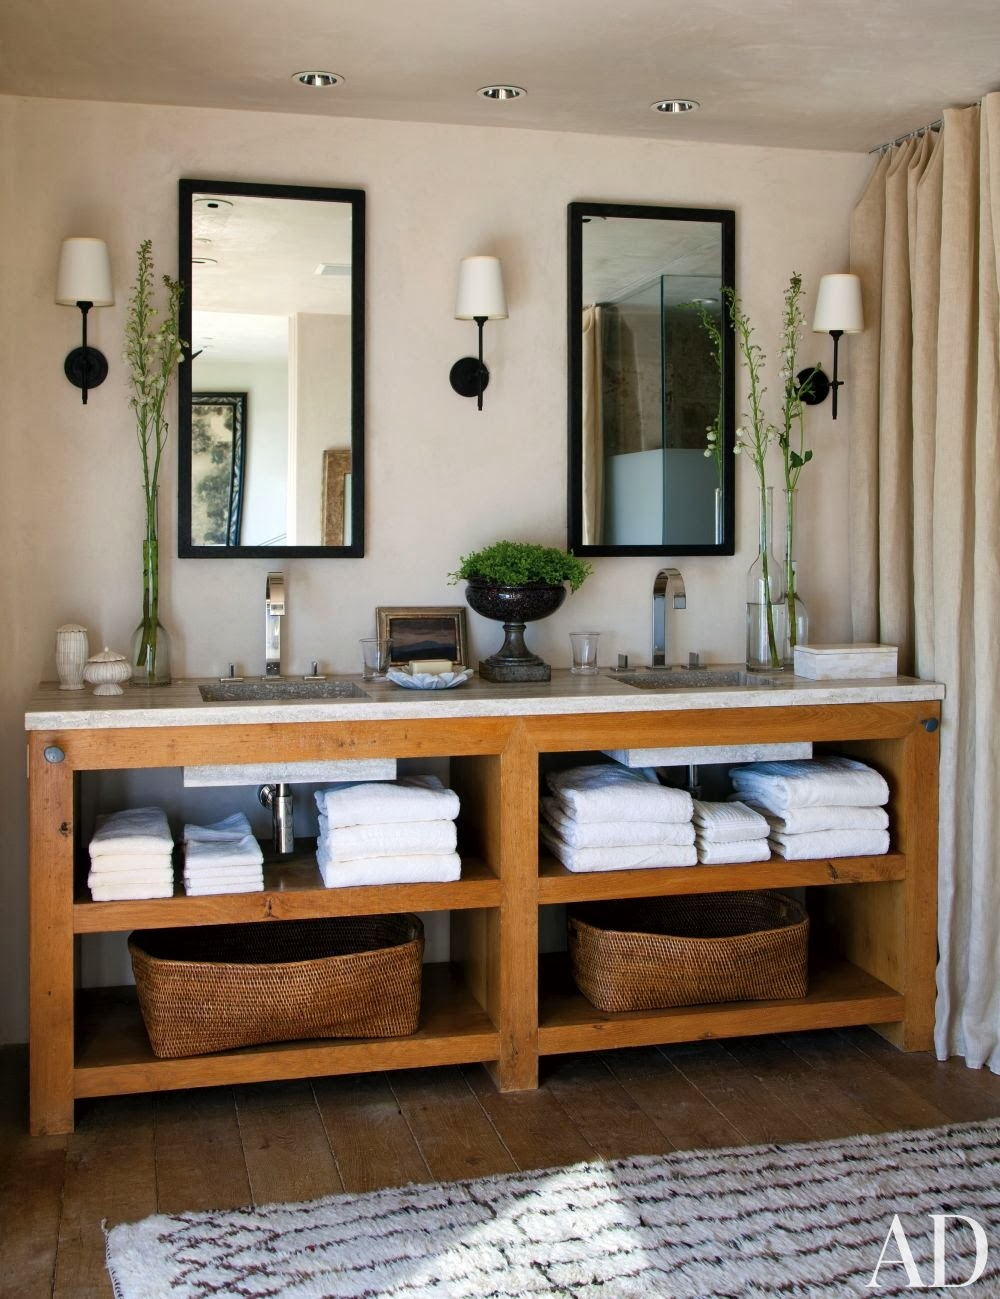 Refresheddesigns seven stunning modern rustic bathrooms for 2 bathroom